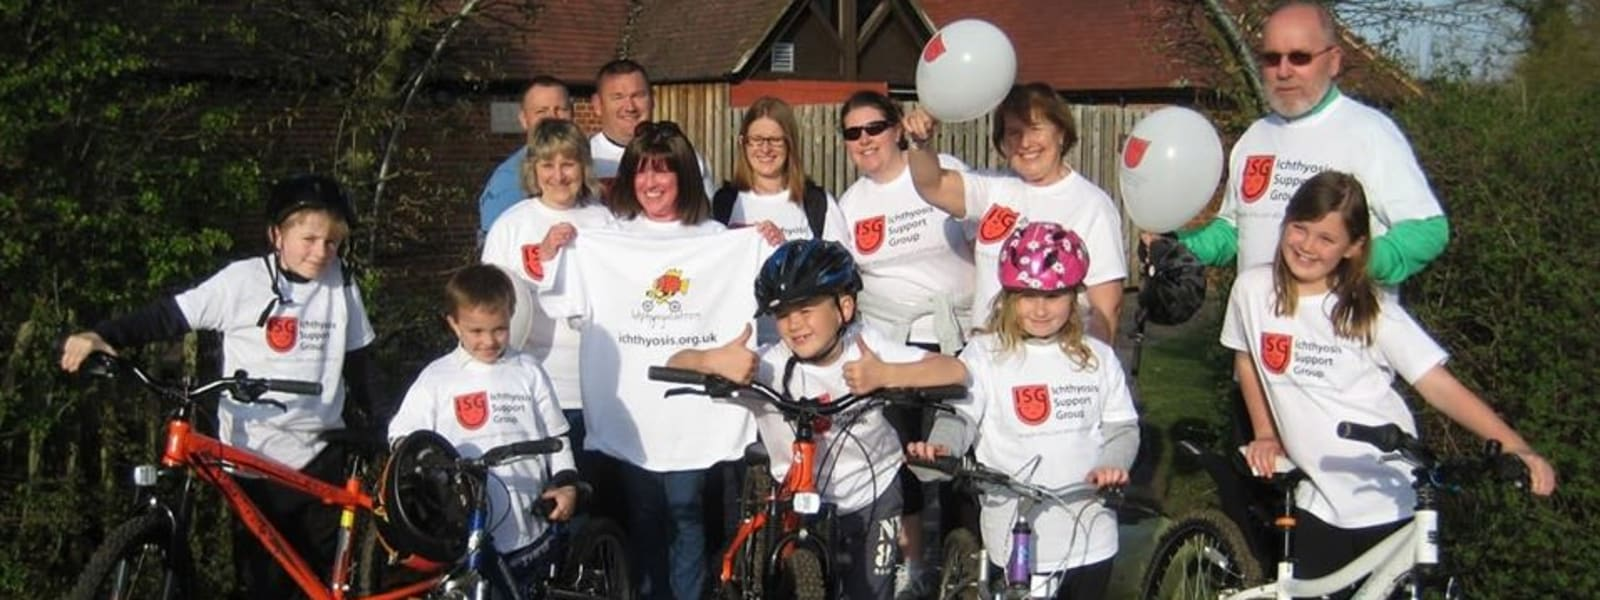 Fundraise for the Ichthyosis Support Group